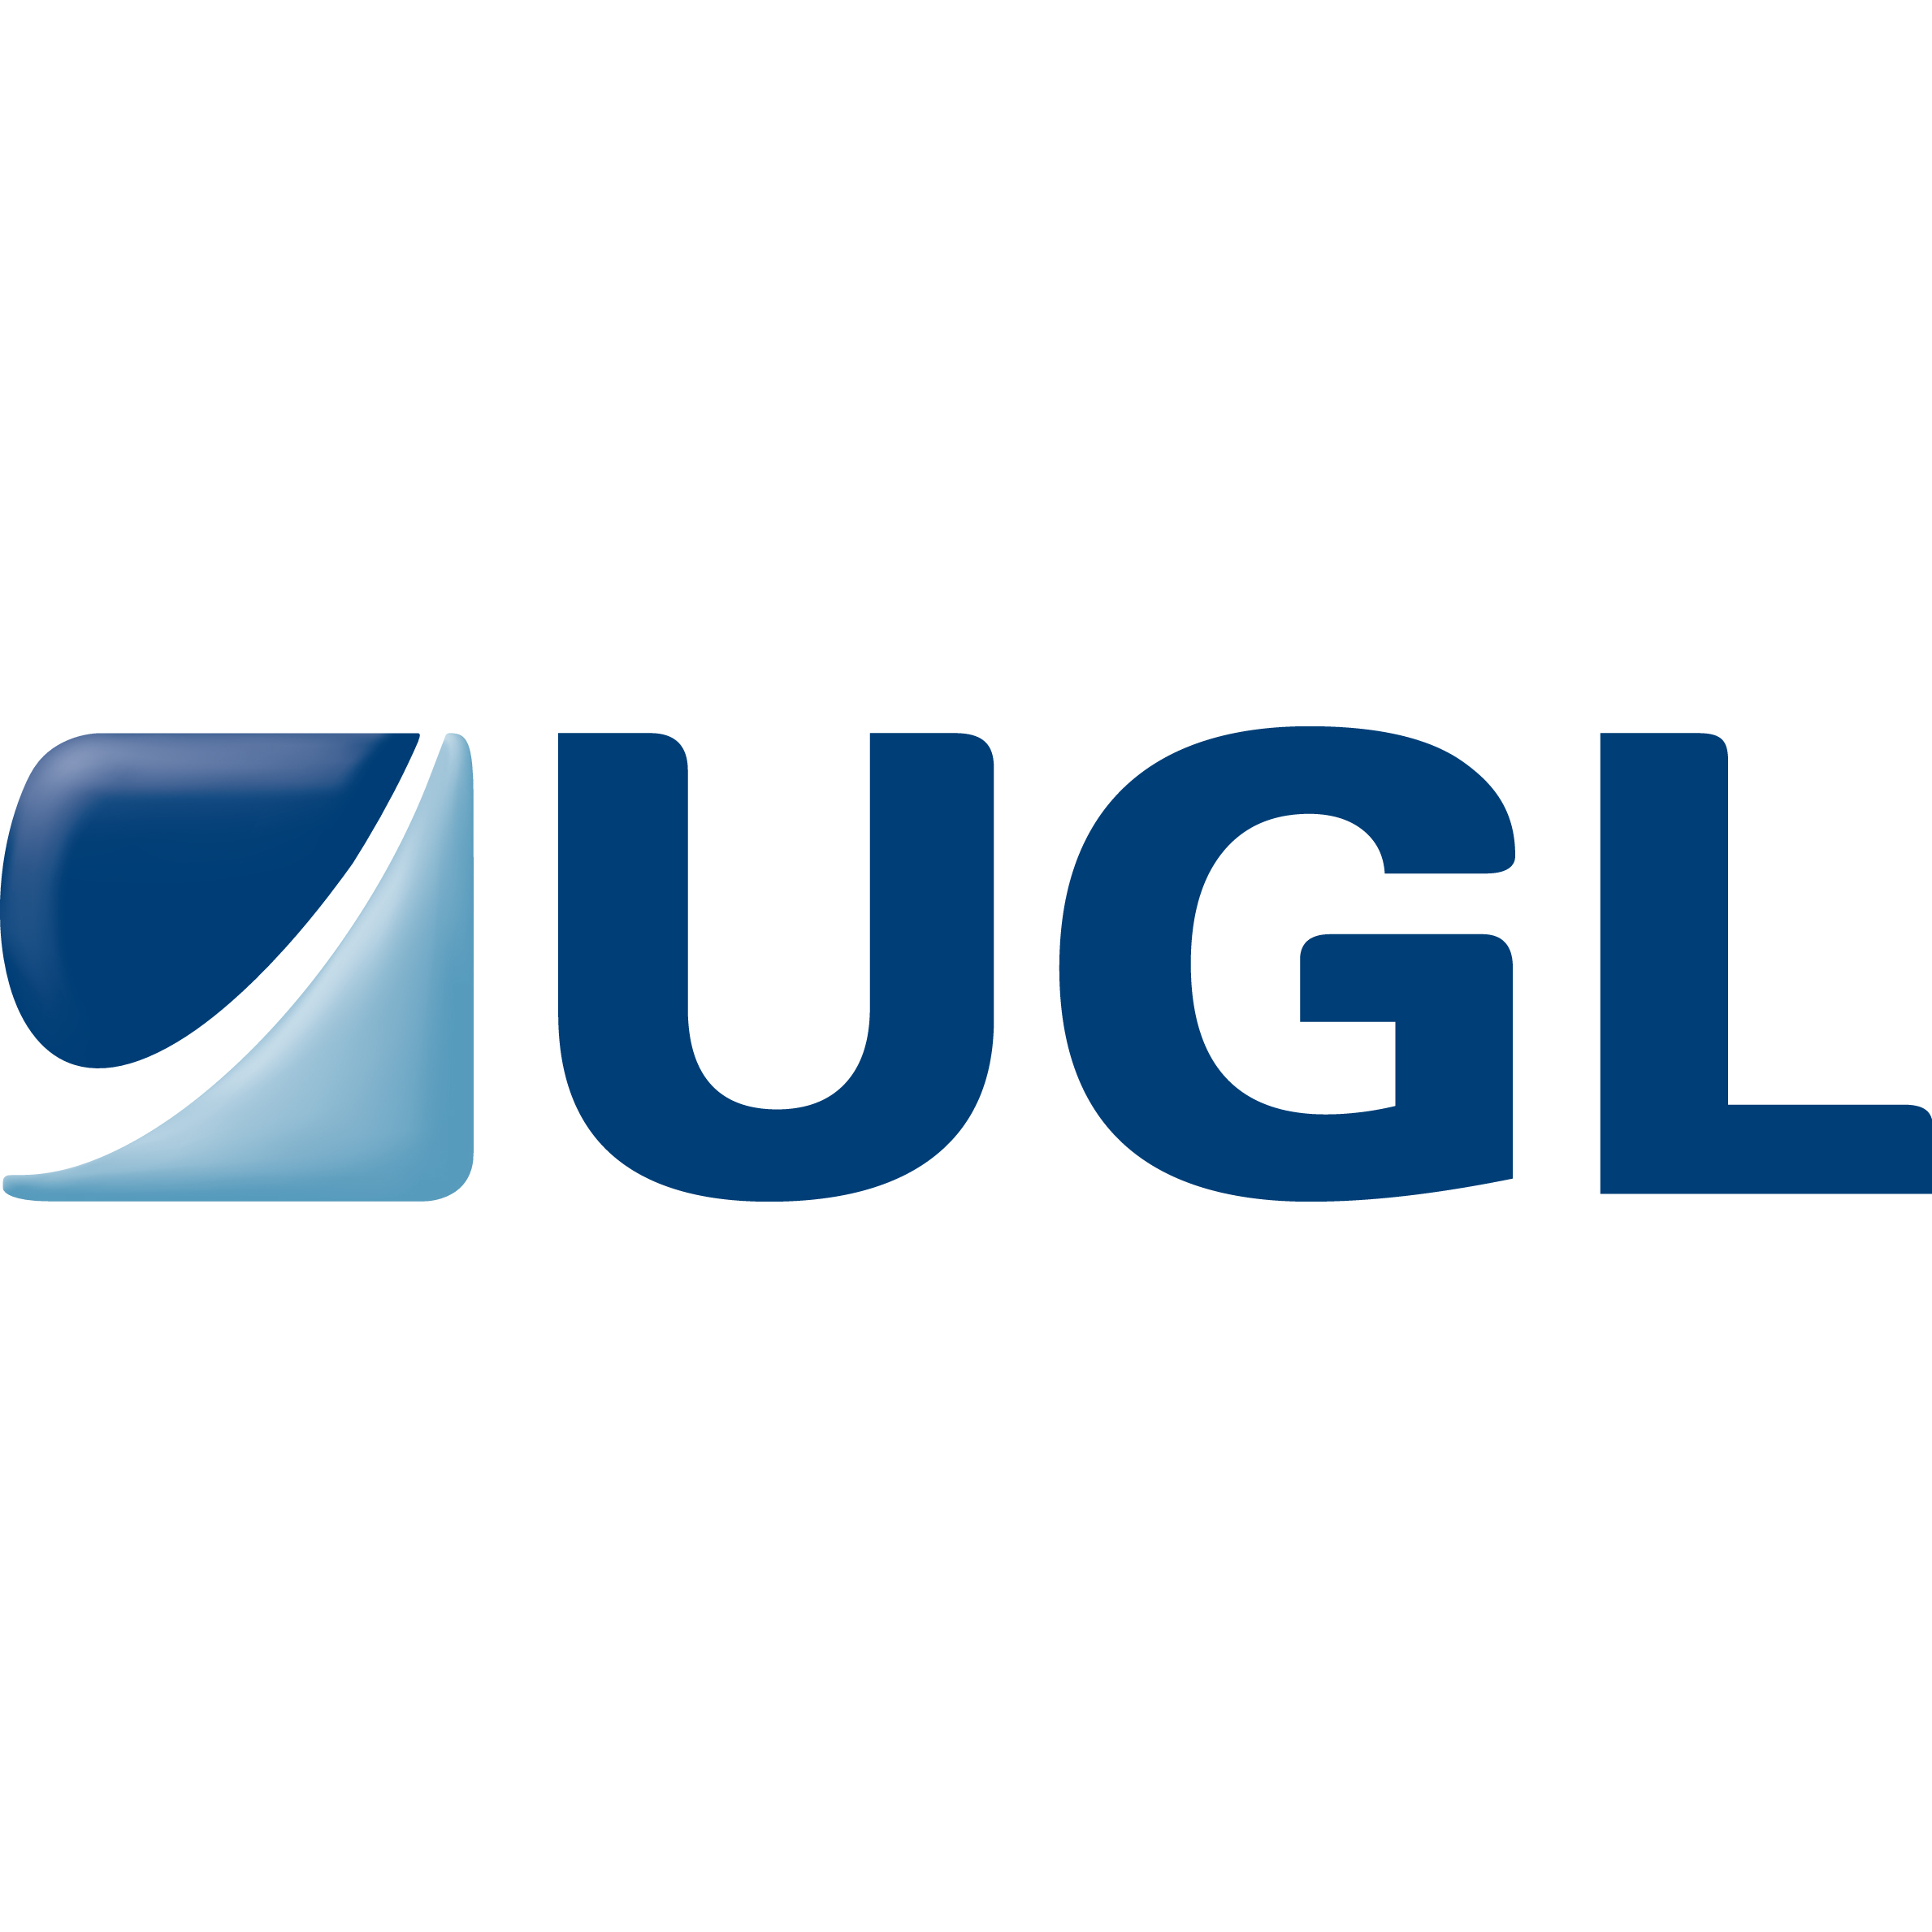 https://freightquip.com/production/wp-content/uploads/2020/07/UGL-Logo.jpg